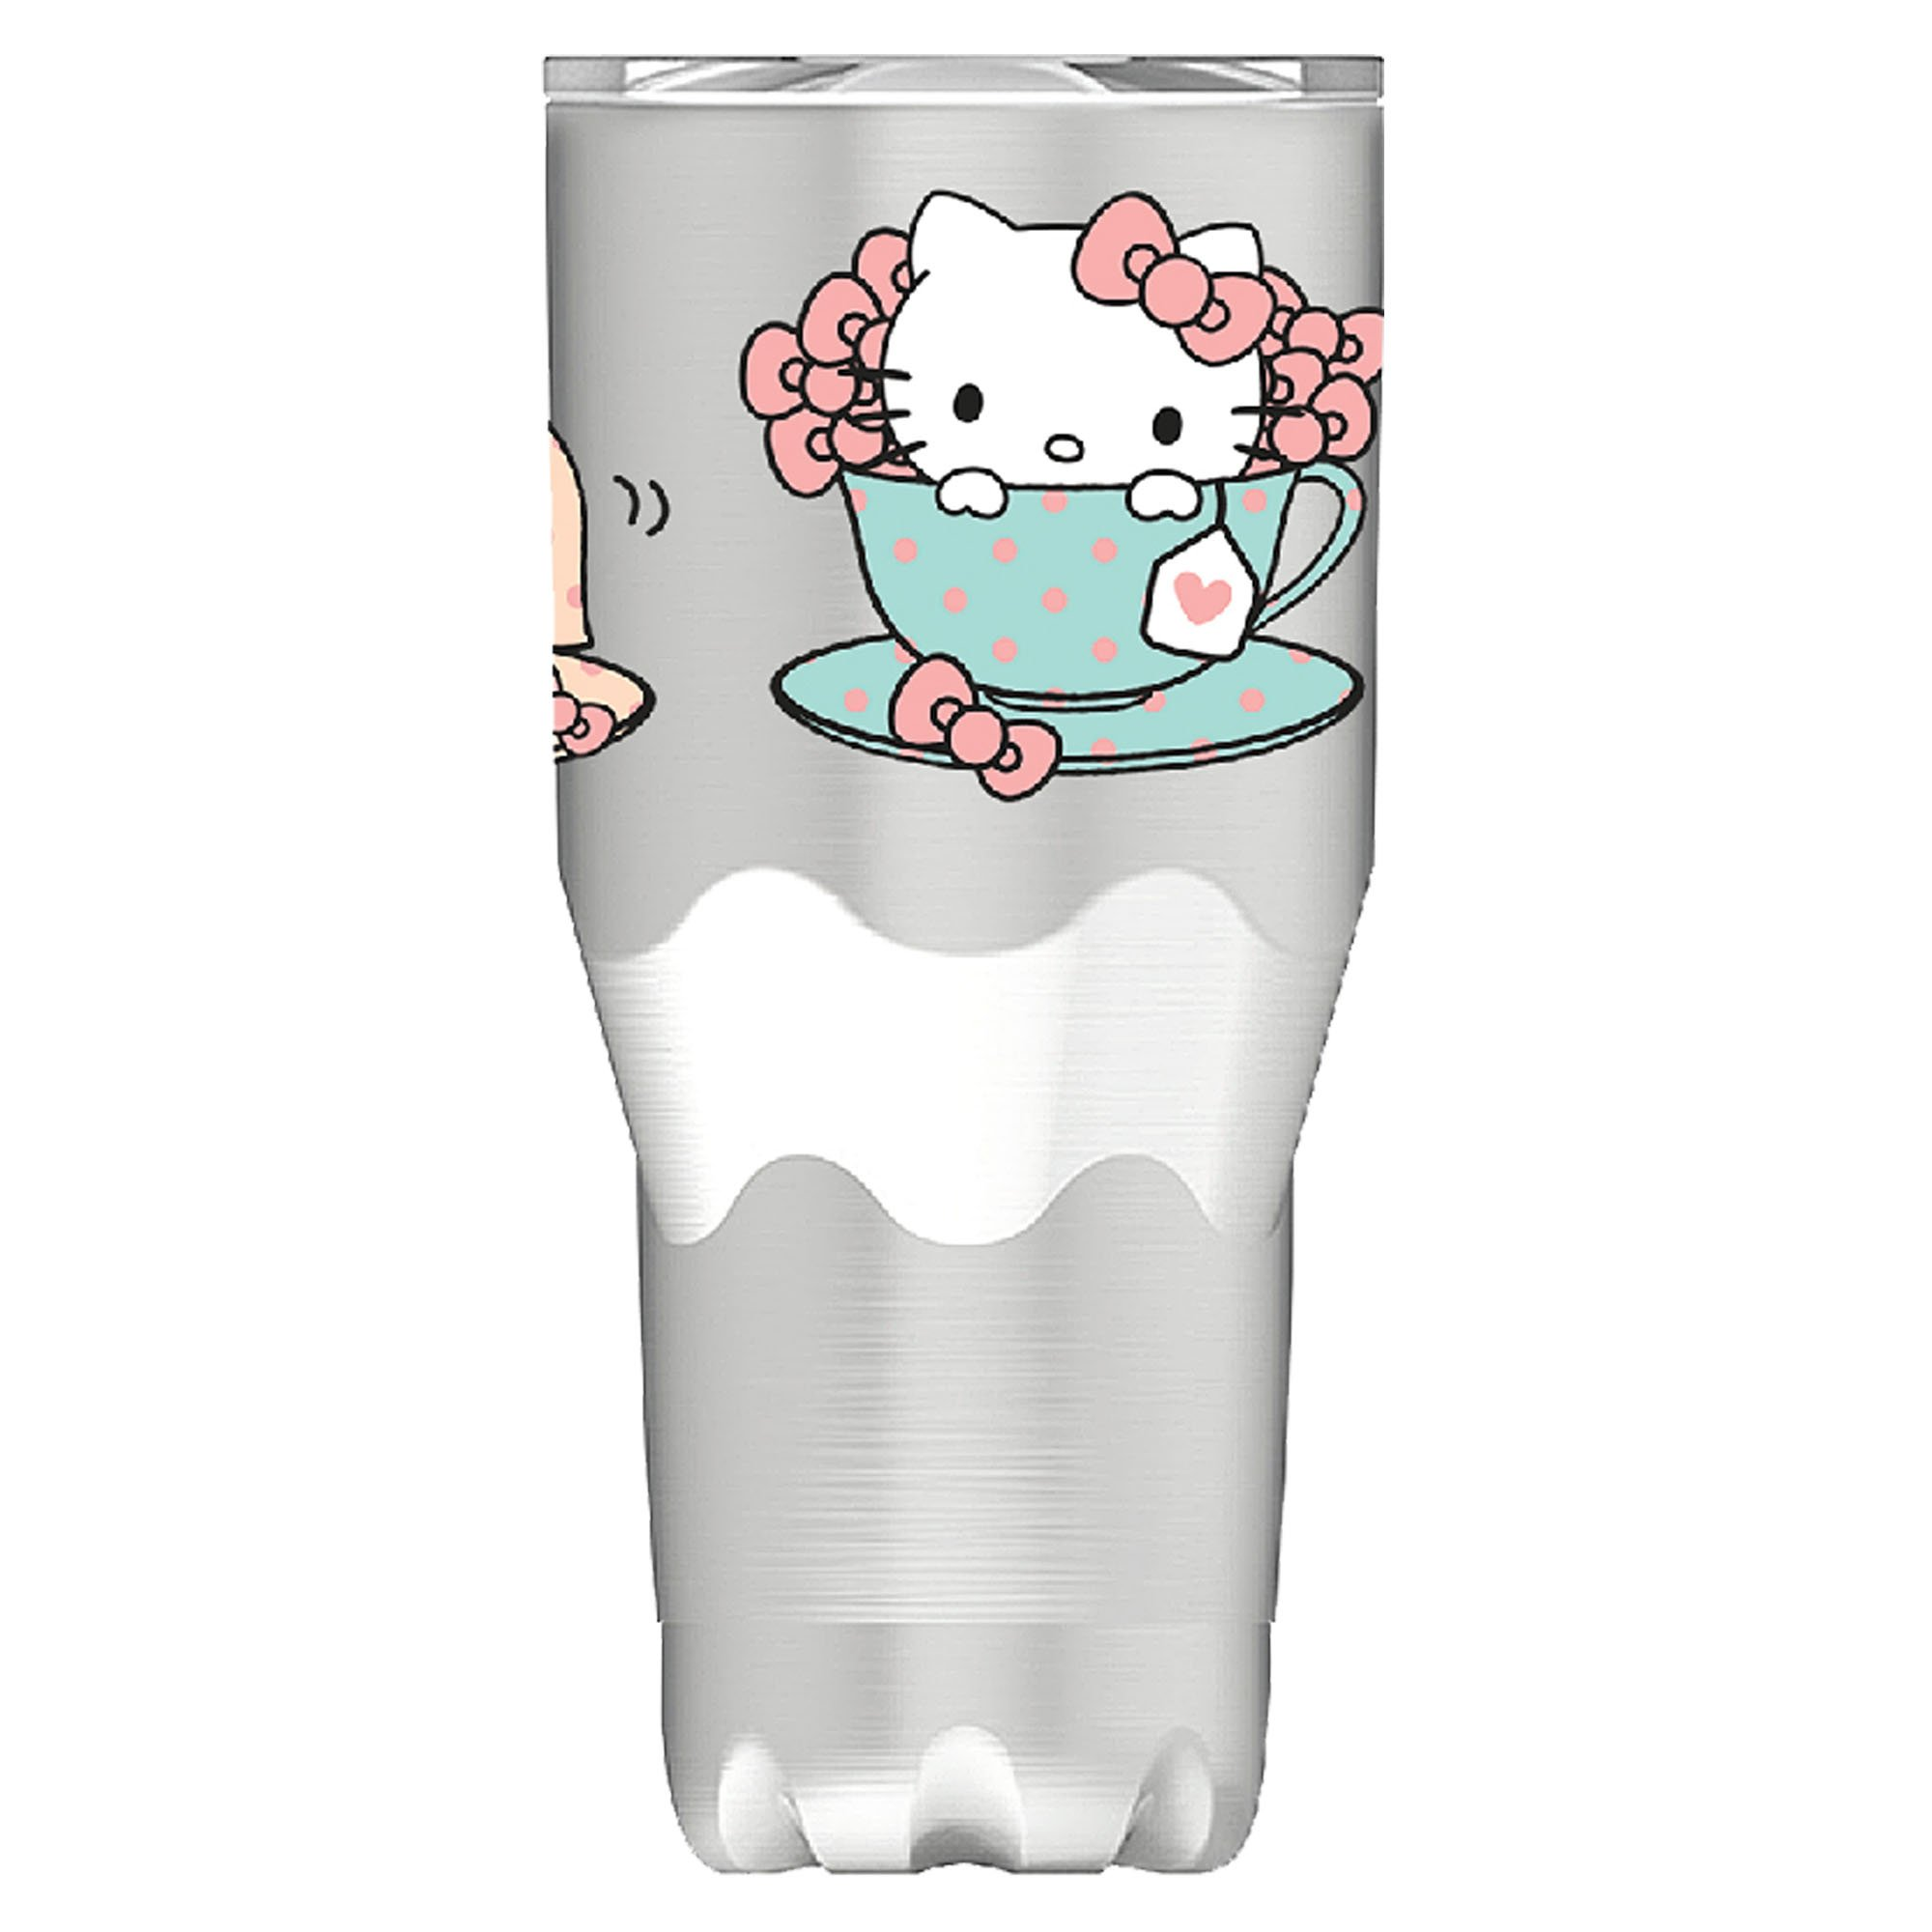 Vandor 18109 Hello Kitty 30 Oz. Stainless Steel Travel Mug, Multicolored